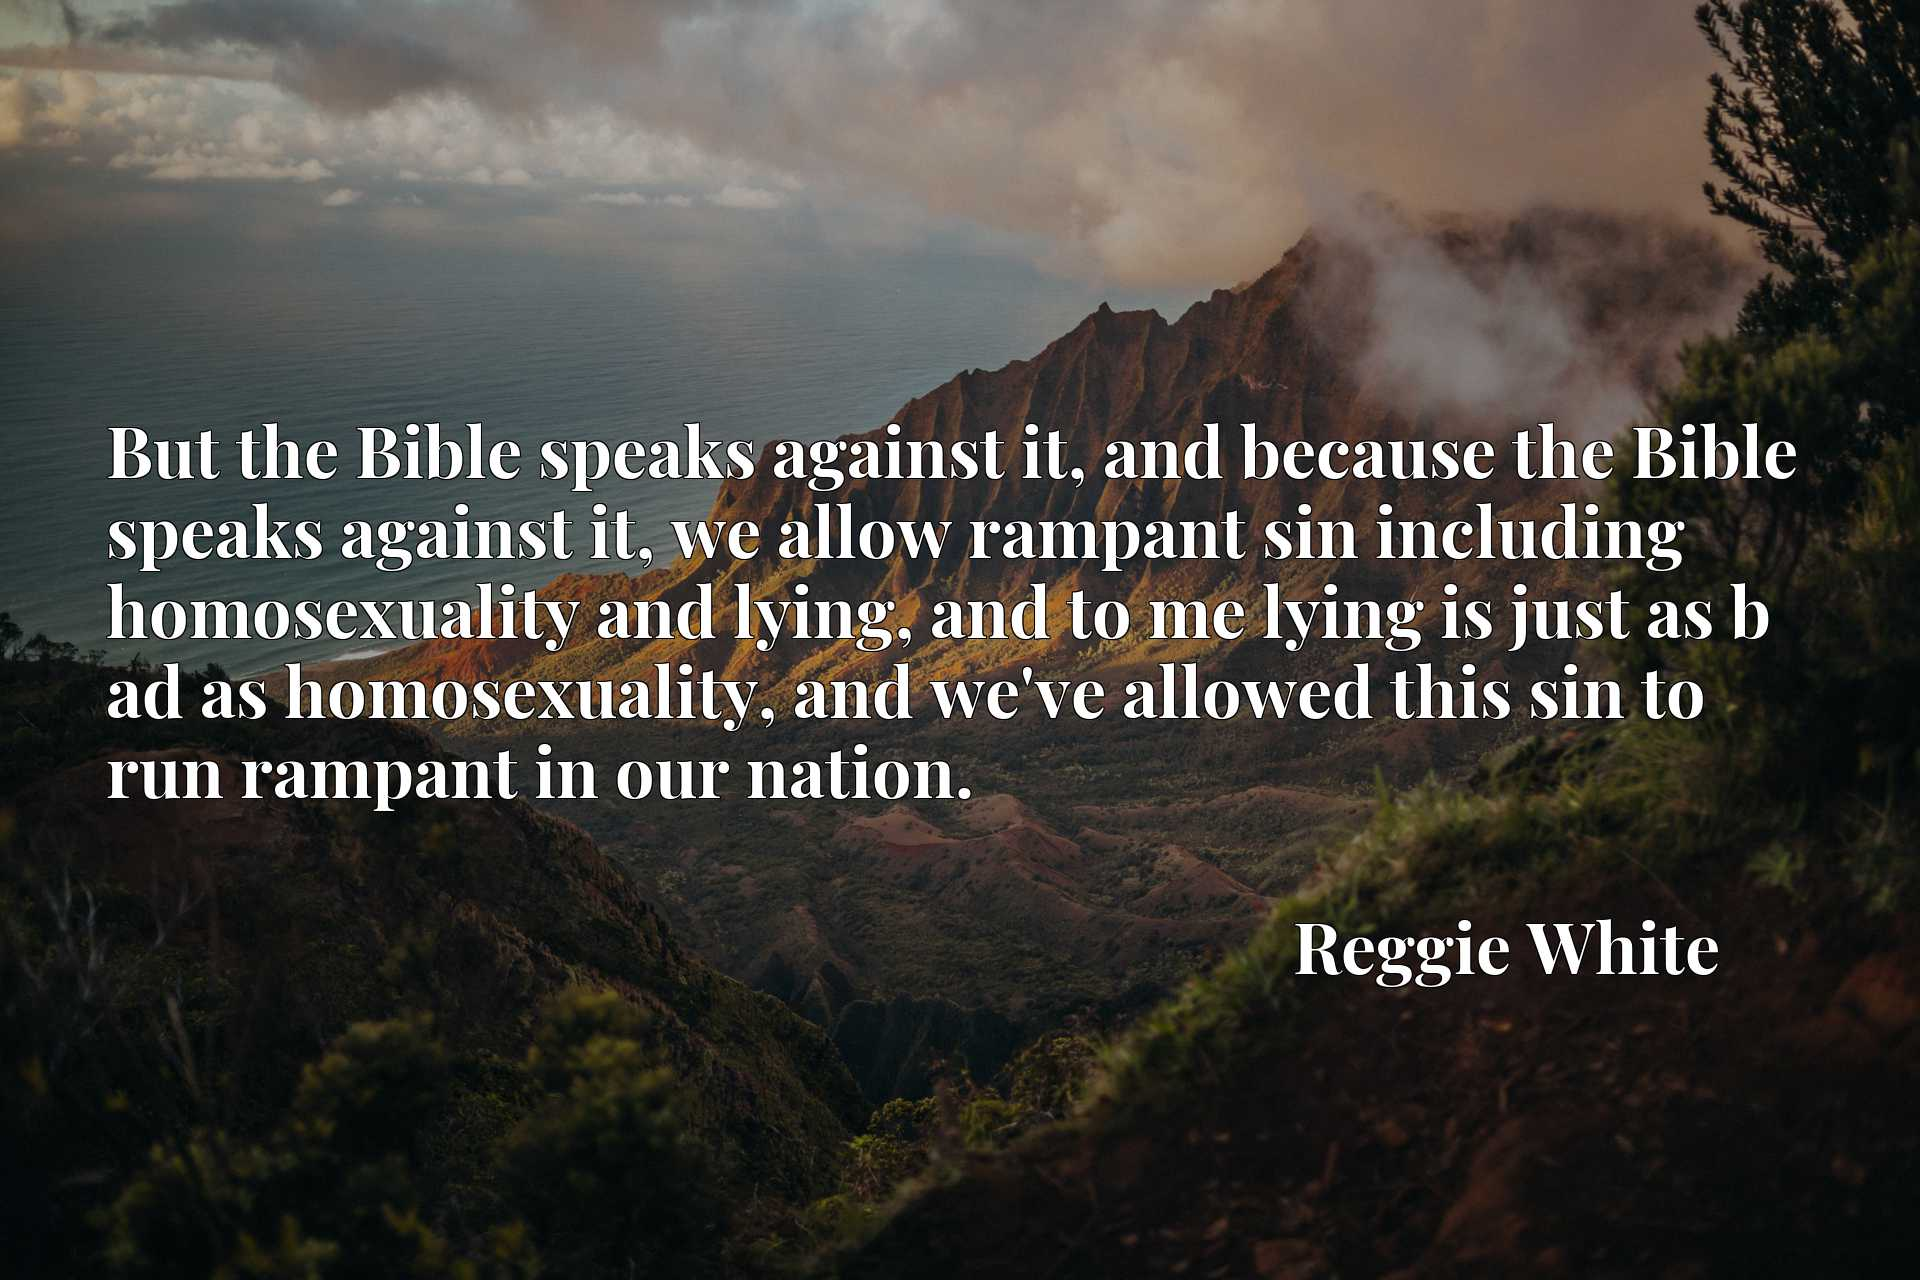 But the Bible speaks against it, and because the Bible speaks against it, we allow rampant sin including homosexuality and lying, and to me lying is just as b ad as homosexuality, and we've allowed this sin to run rampant in our nation.